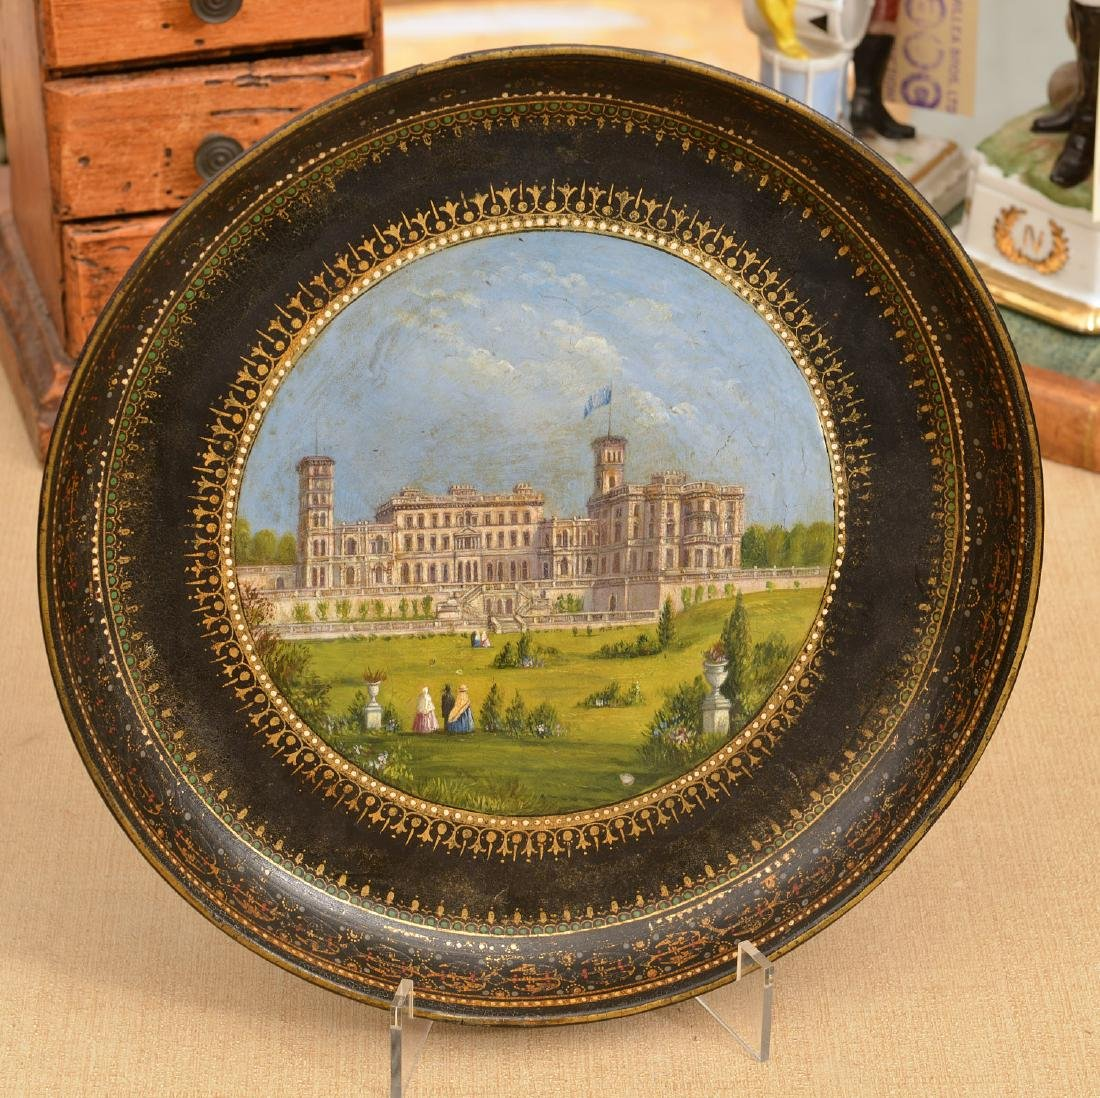 Victorian papier mache dish with Manor house